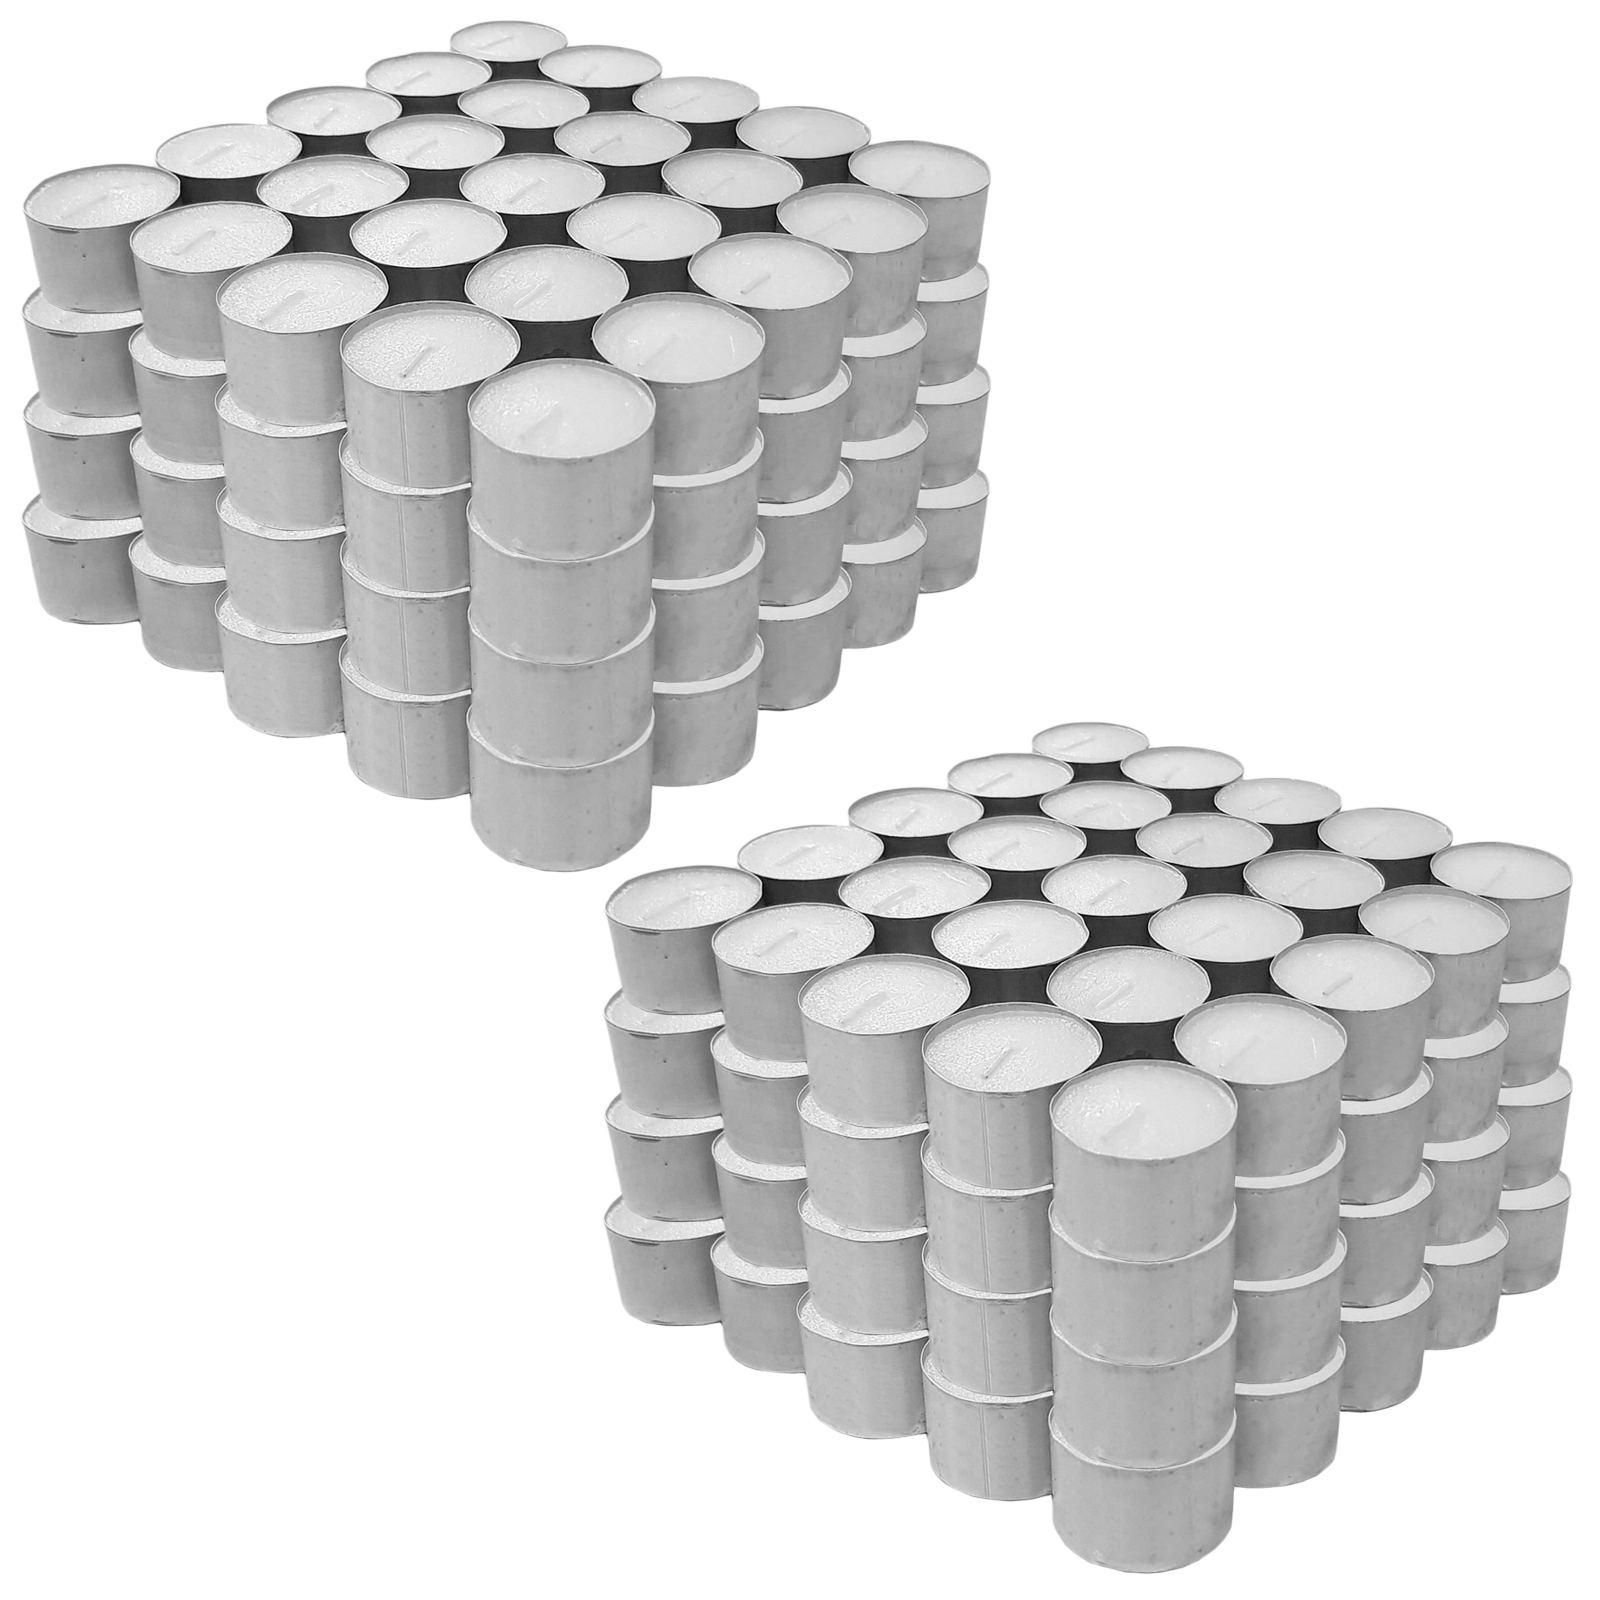 50-x-Tealights-Long-8-Hour-Burning-Time-White-Unscented-Party-Candle-Tea-Lights